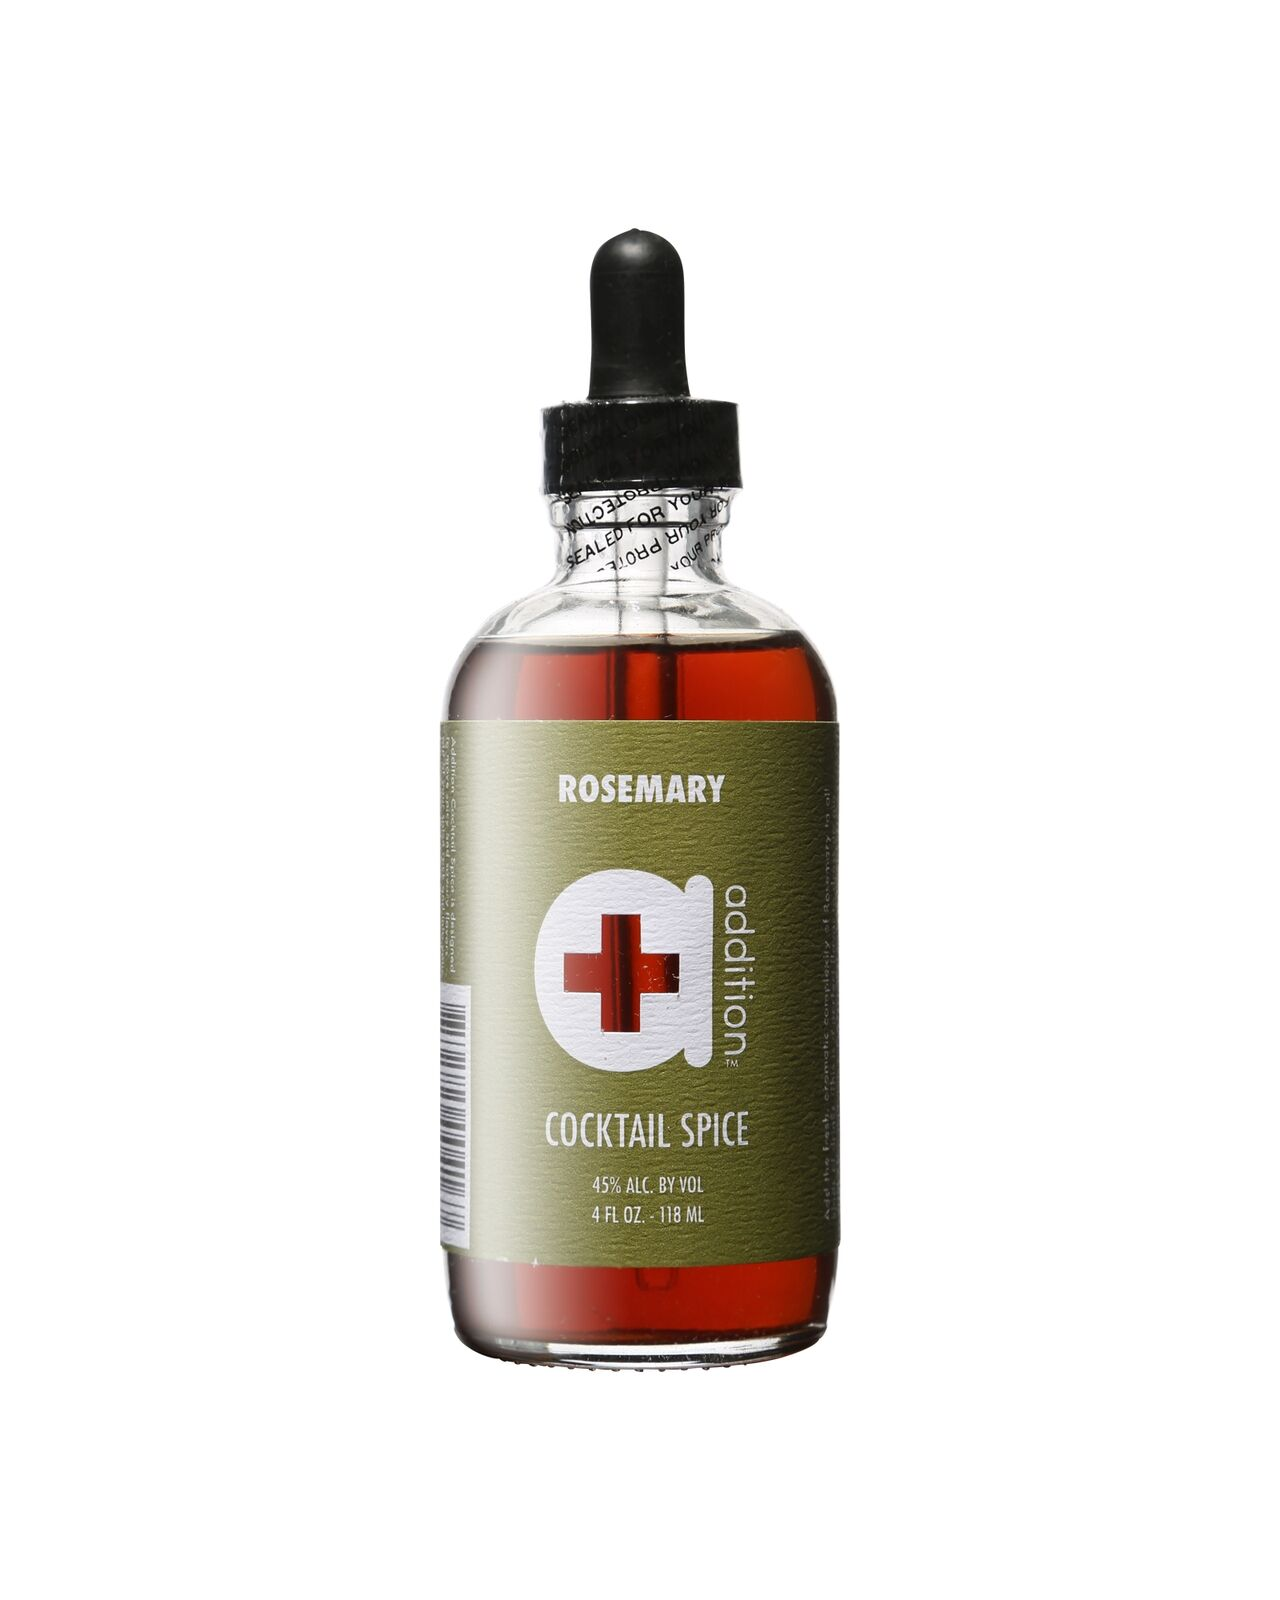 Addition Rosemary Cocktail Flavouring 118mL bottle Bitters